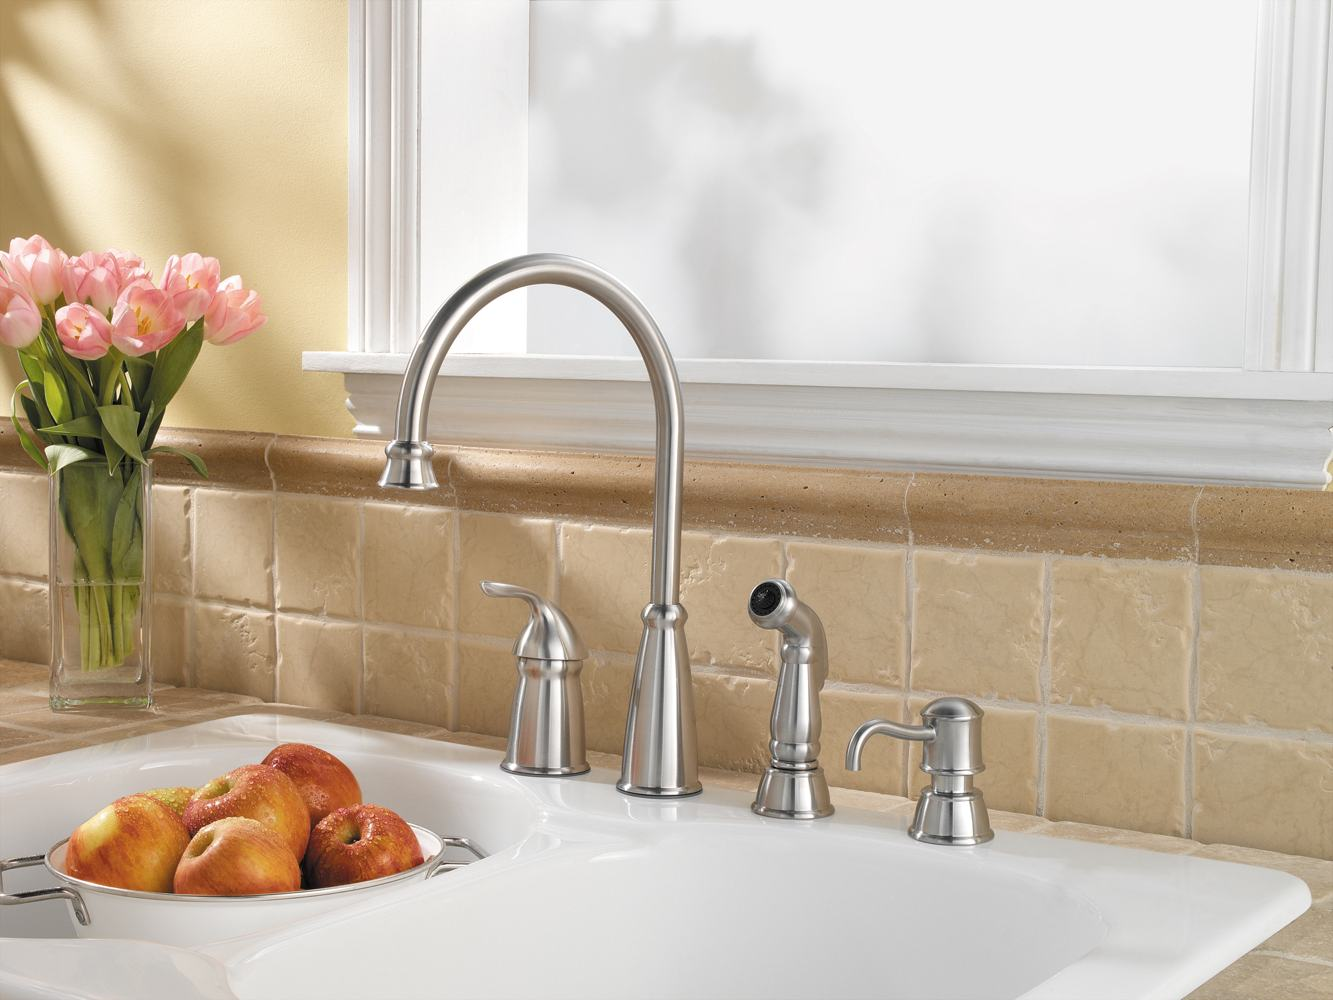 Kitchen sink faucets with soap dispenser : things you should know